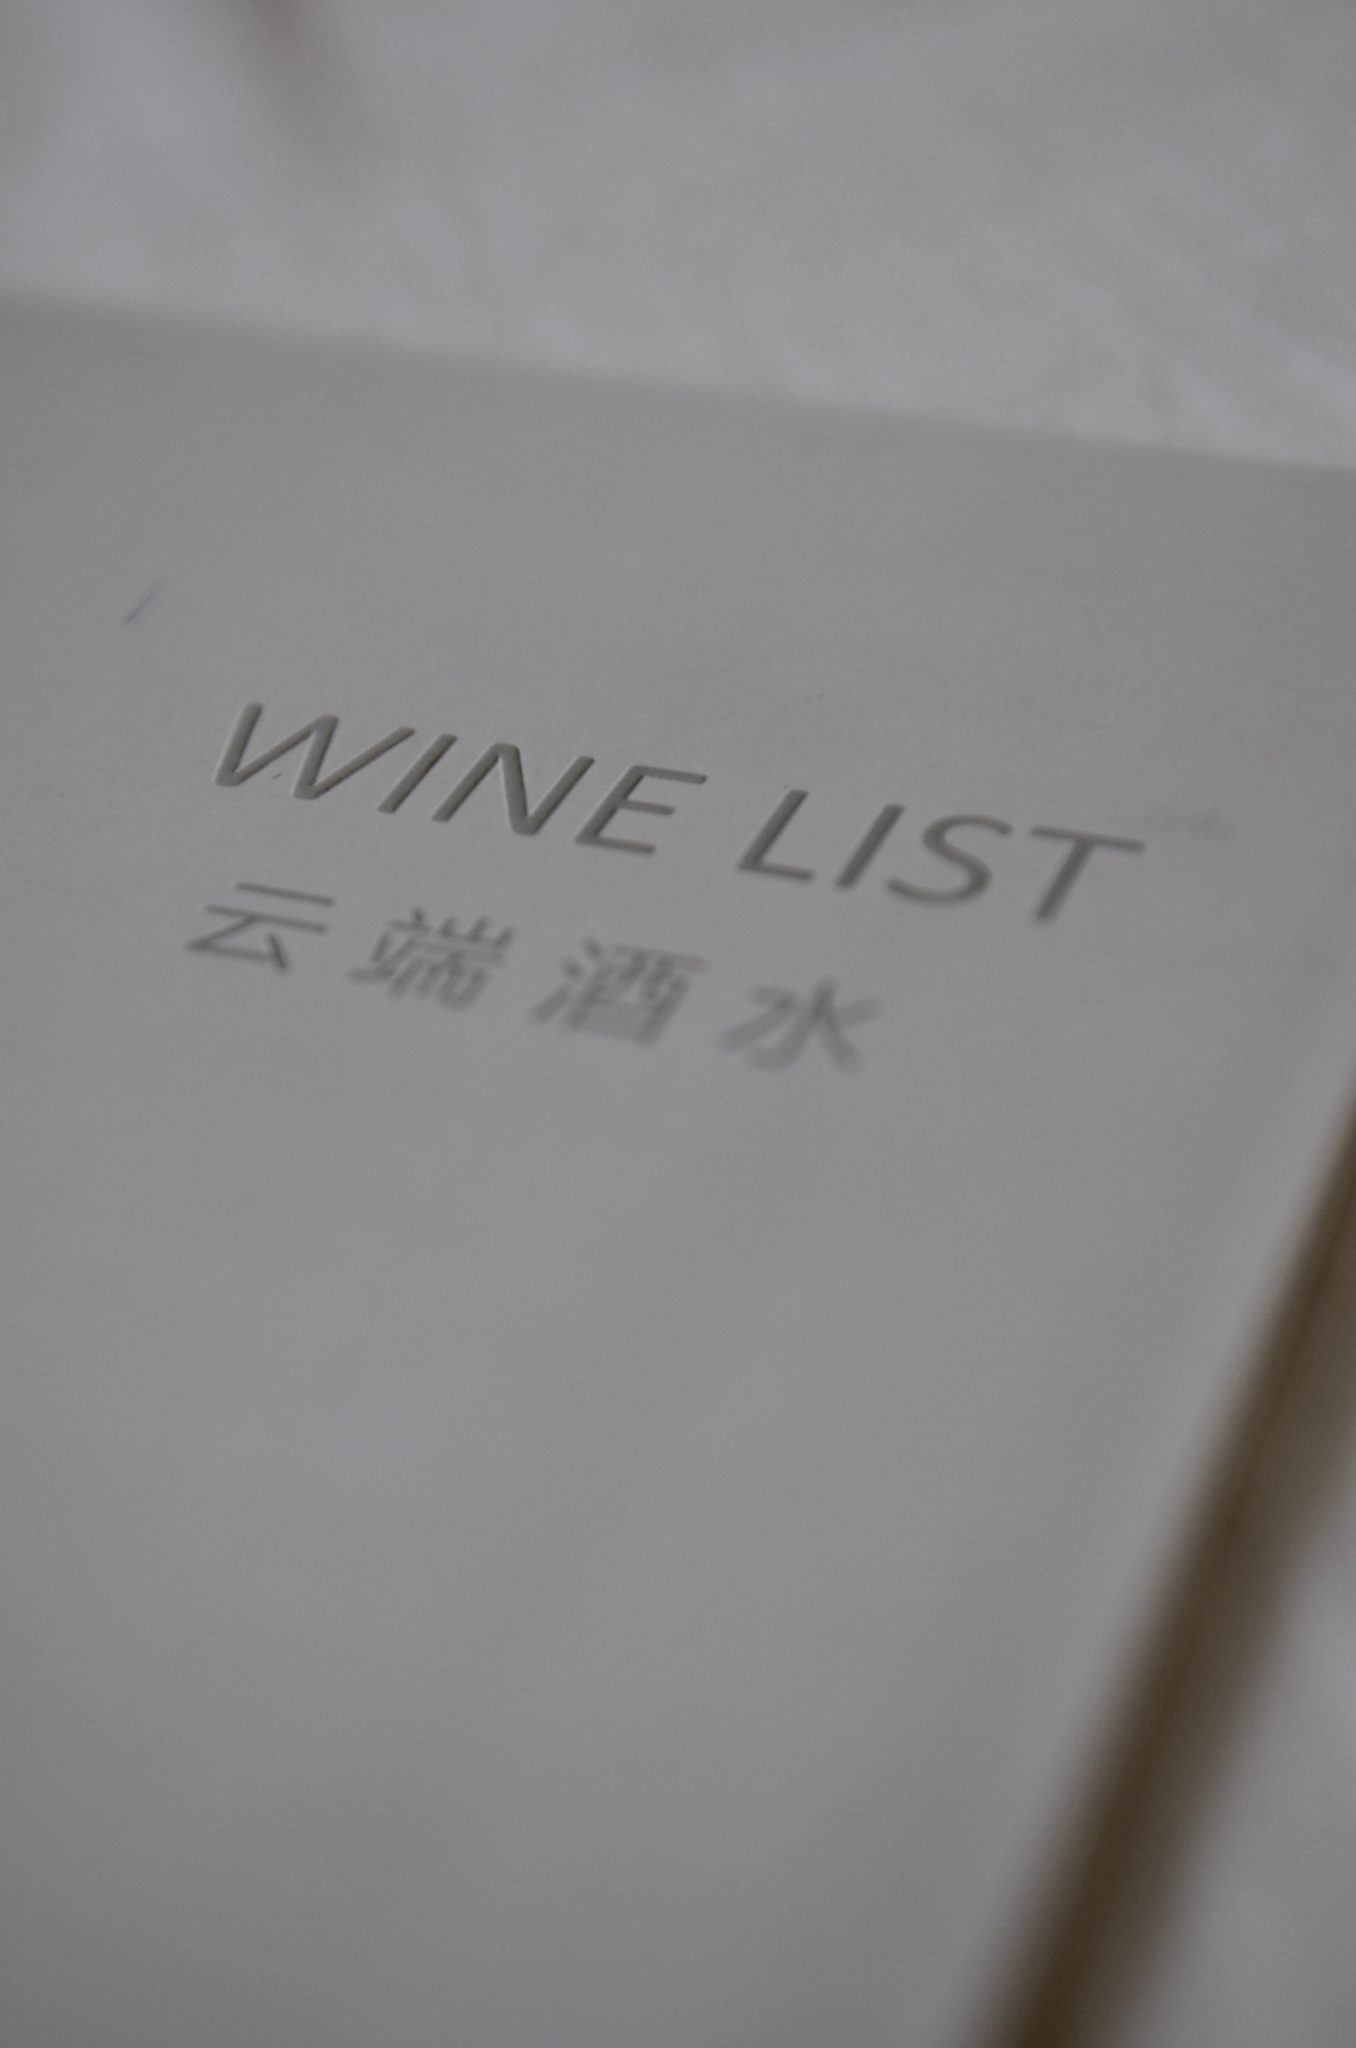 Hainan-Business-Class-Wine-List